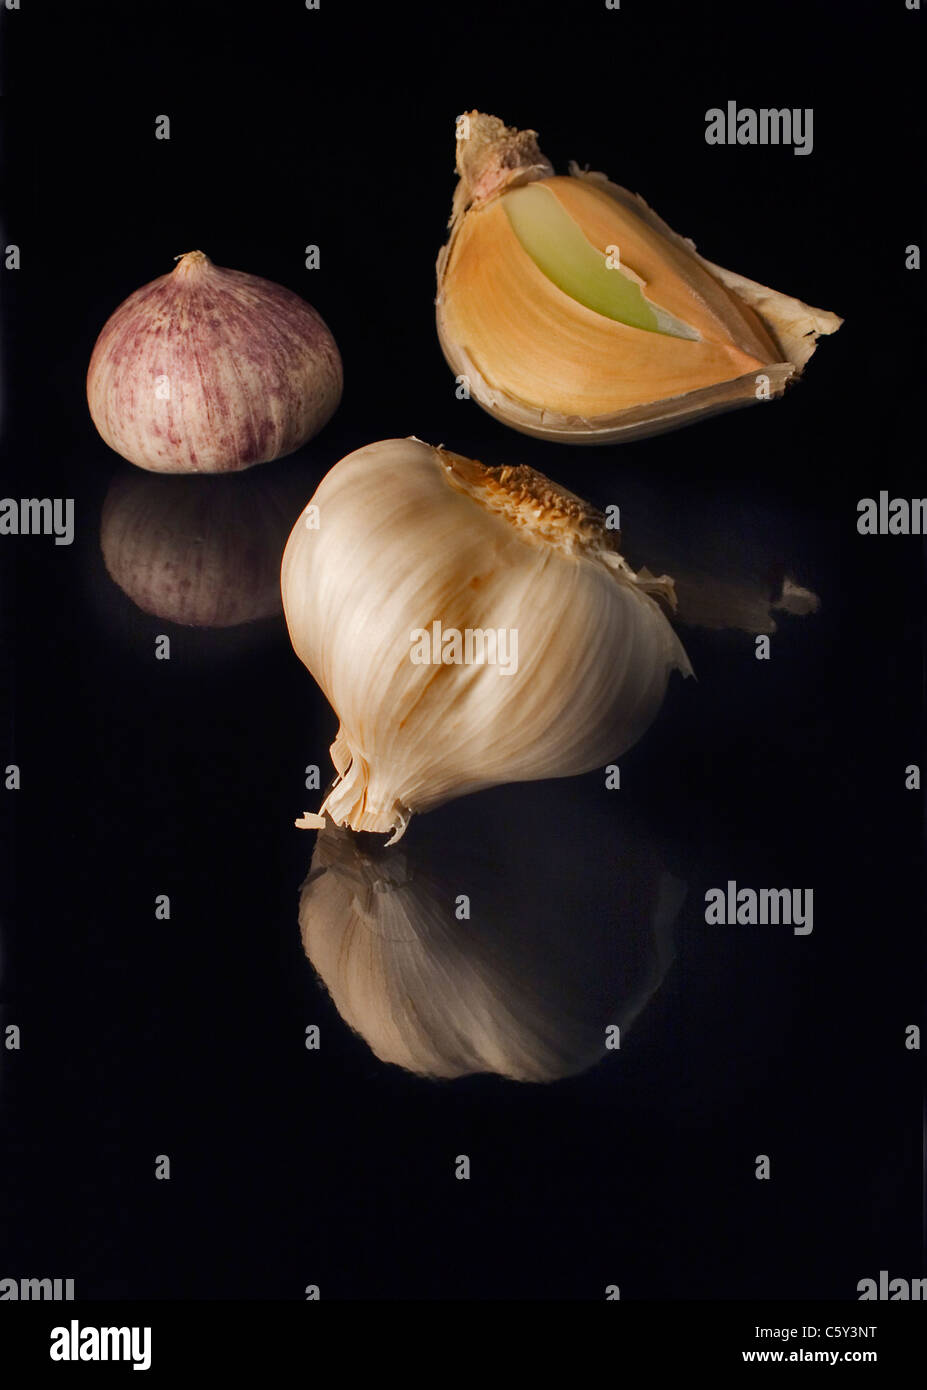 Three types of garlic on a shiny black surface. - Stock Image